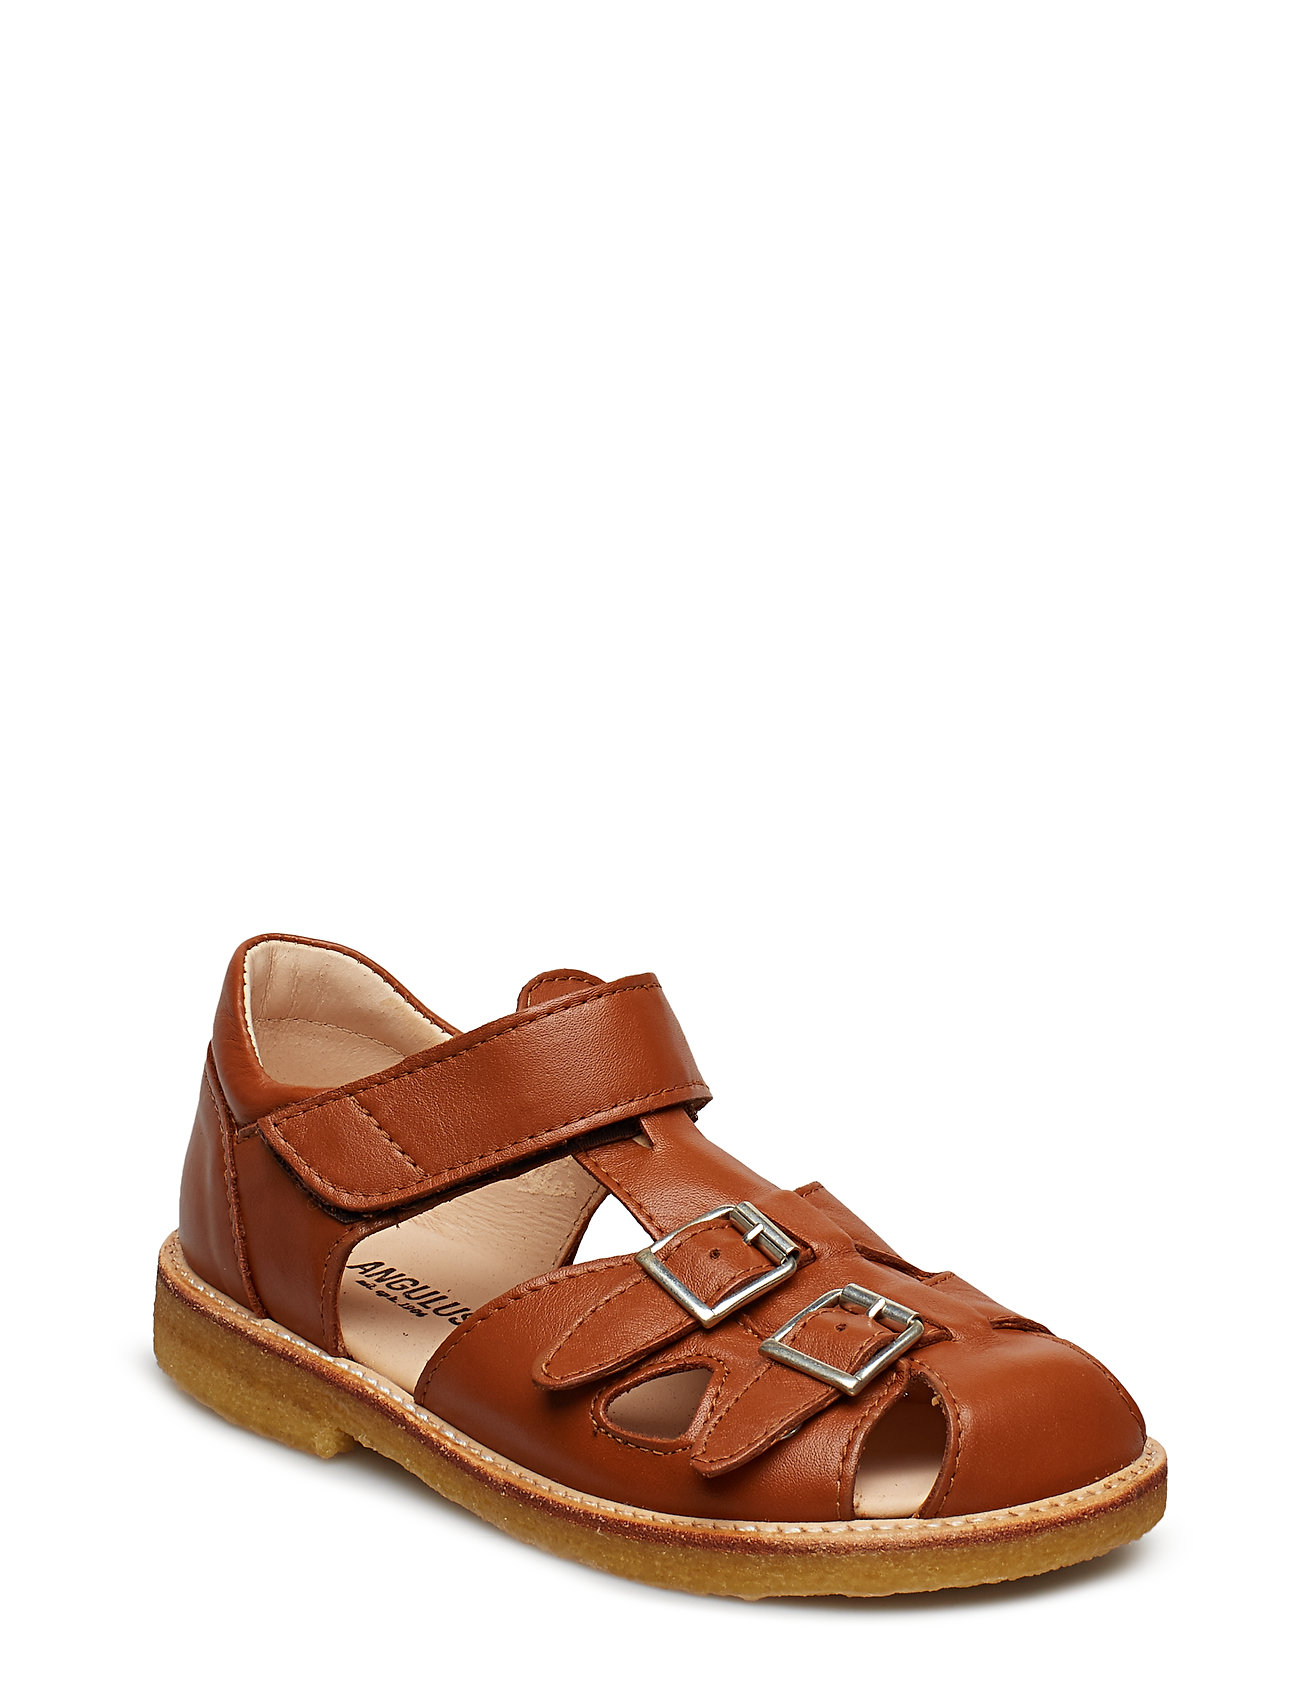 ANGULUS Sandal with two buckles in front - 1431 COGNAC